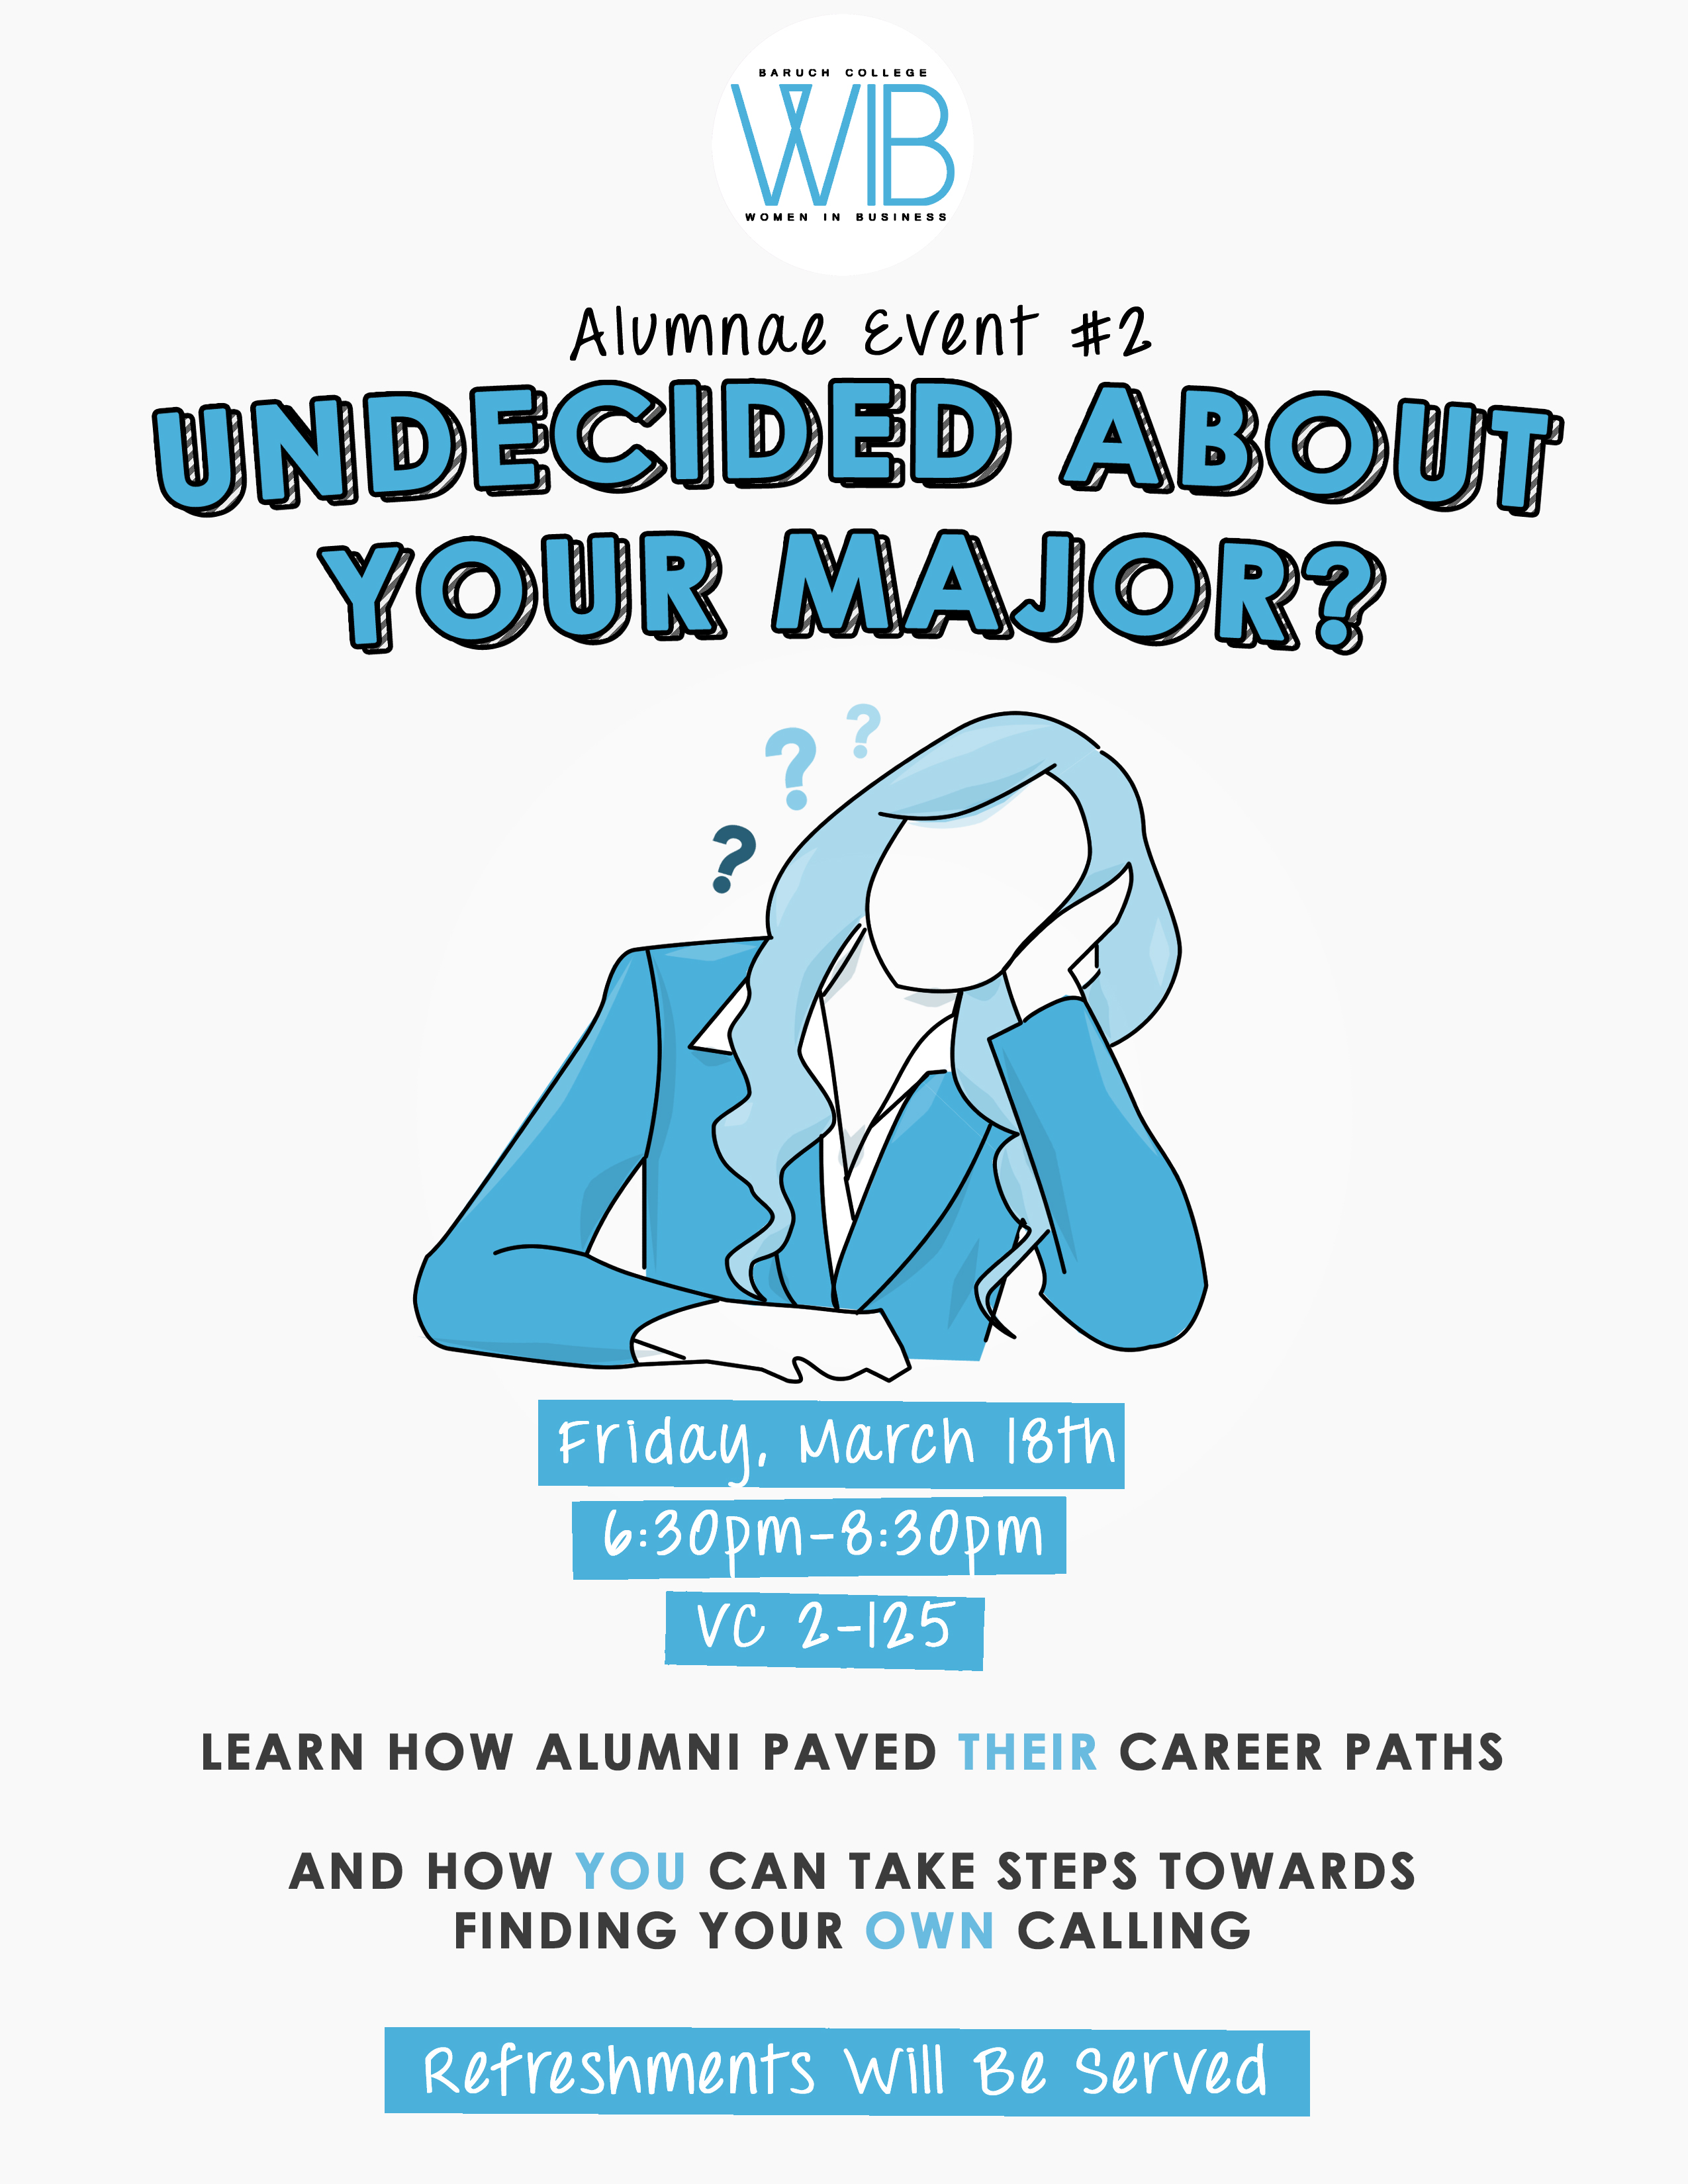 Undecided about your major